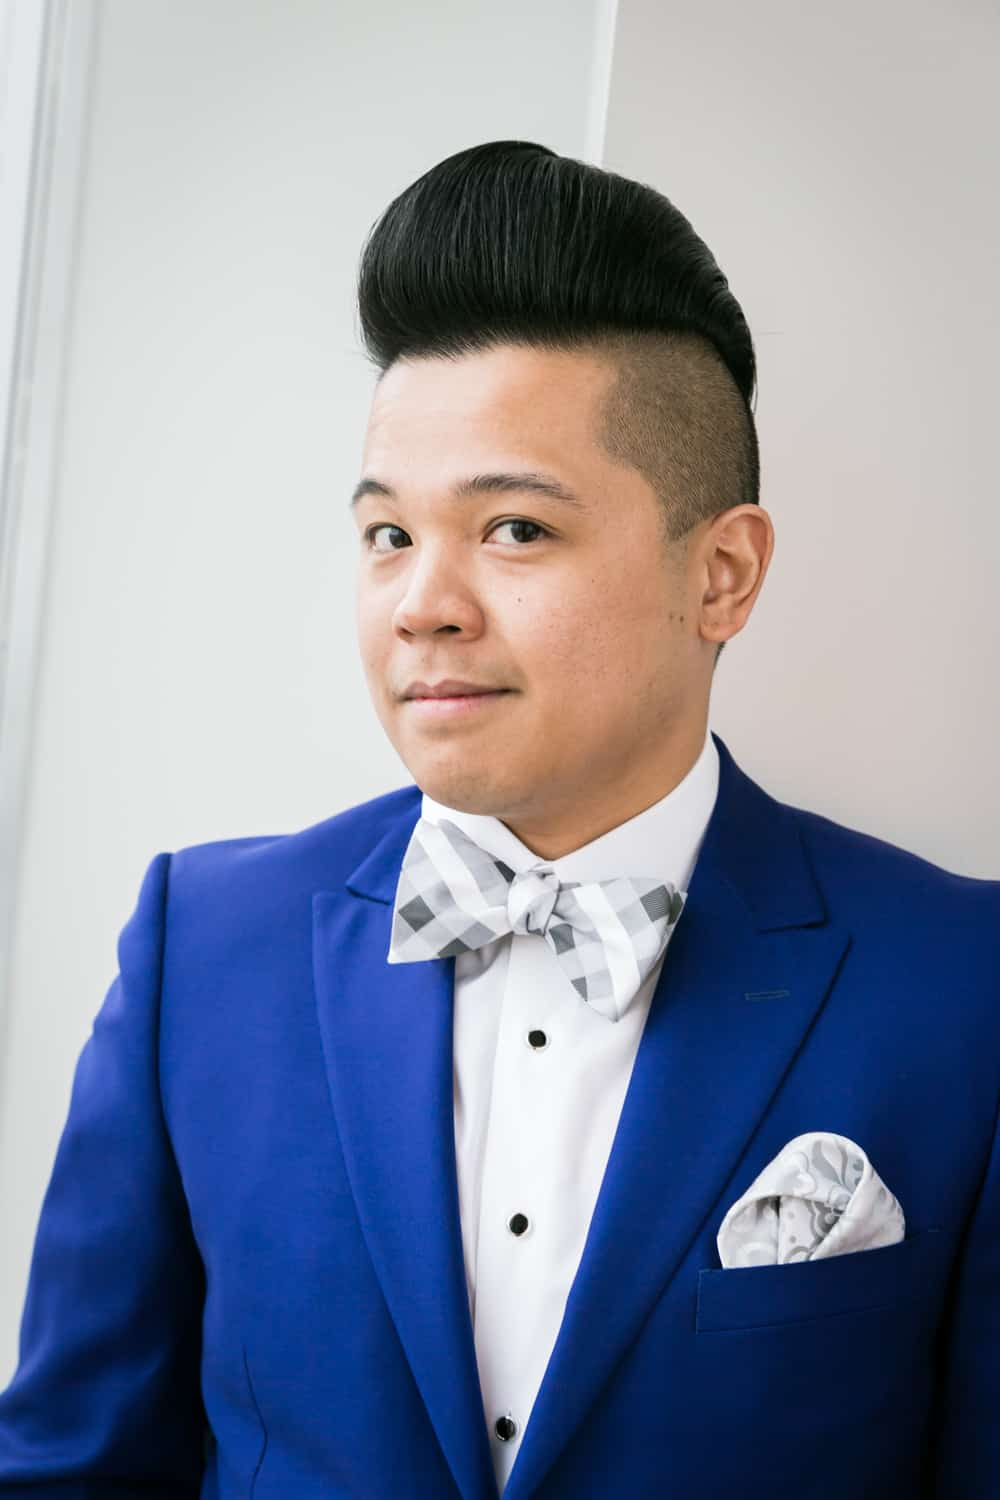 Portrait of groom in blue suit and bow tie